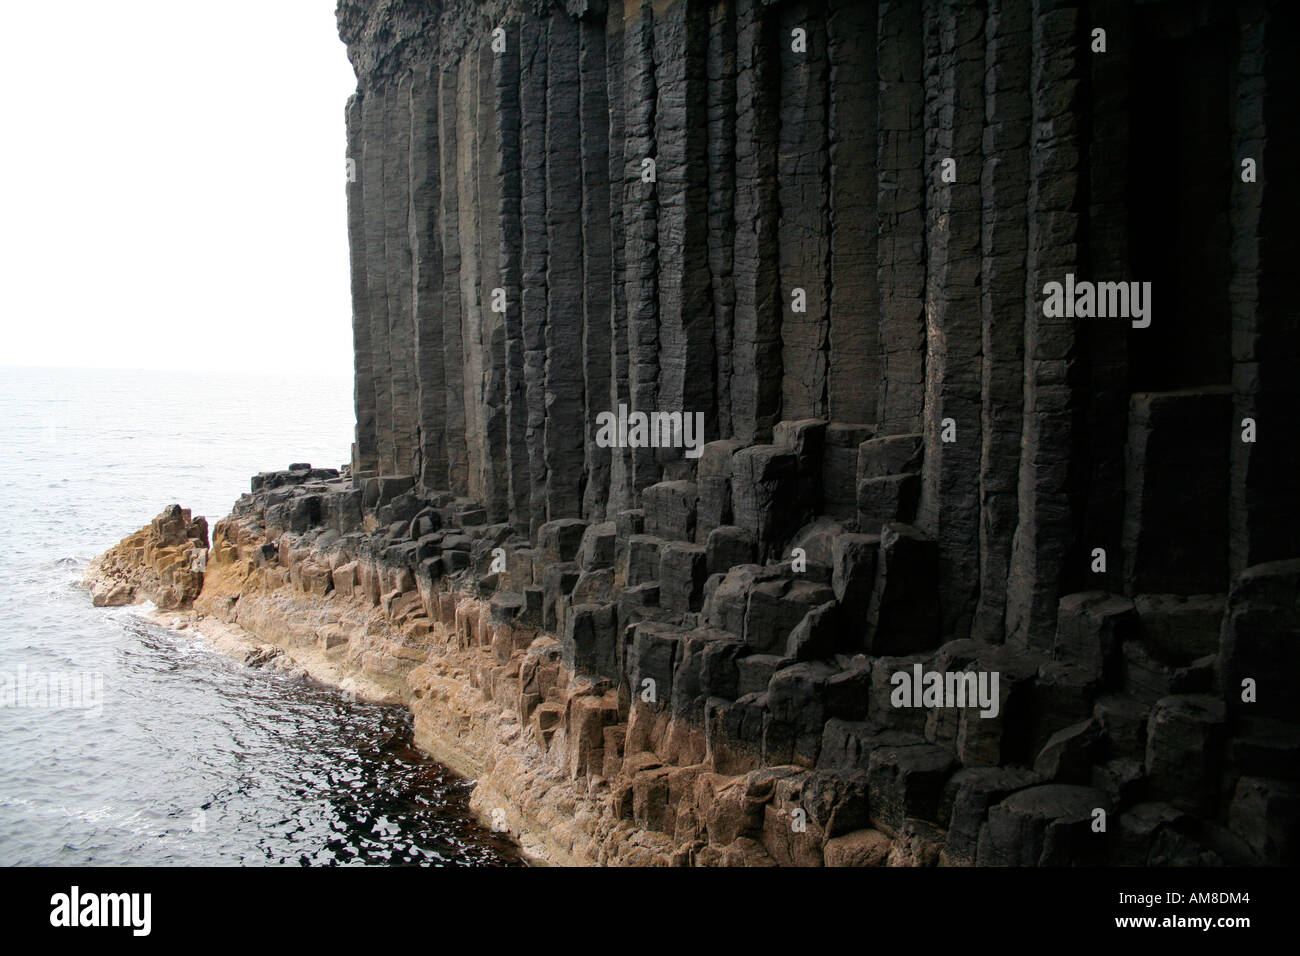 Fingal's Cave, Staffa, Treshnish Isles near Mull, West Coast of Scotland UK - Stock Image